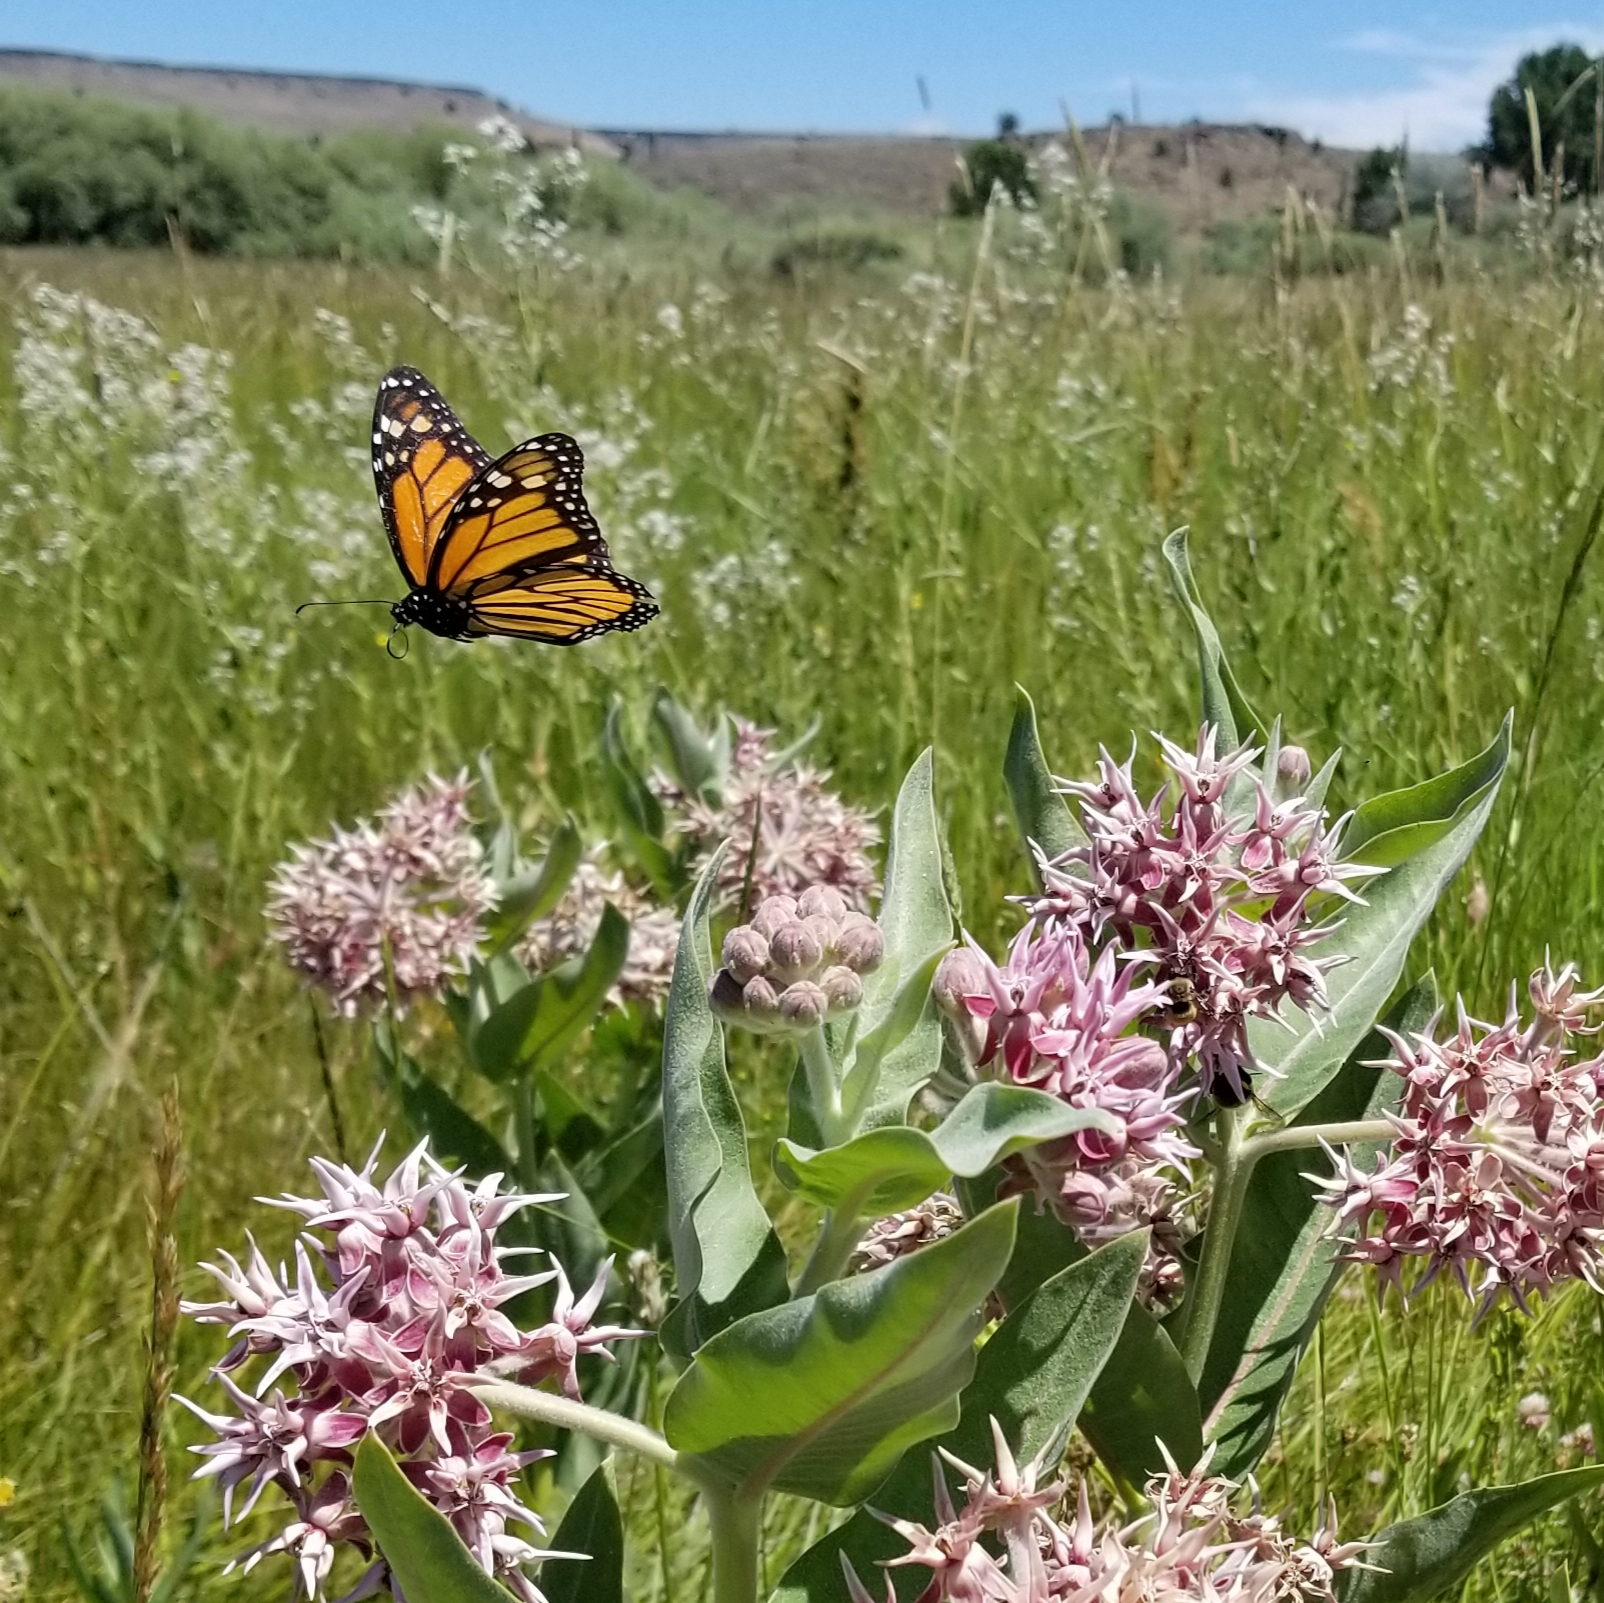 A bright orange monarch flutters over clusters of bright pink showy milkweed (Asclepias speciosa).